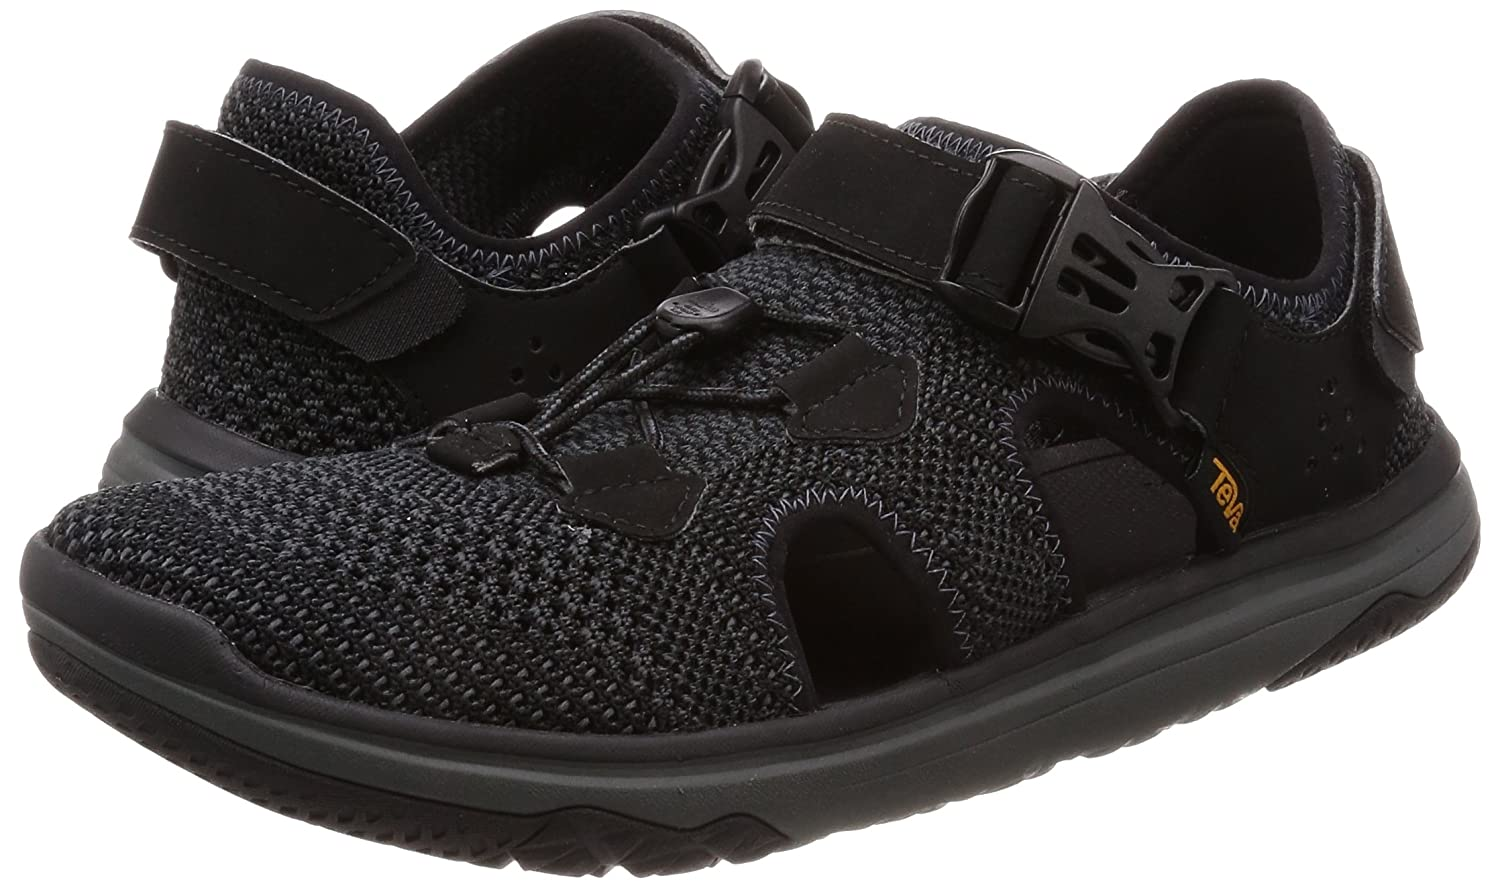 Teva - Men's Terra-Float Travel Knit - Black/Grey - 7 B0721X5MH1 10 D(M) US|Black/Grey